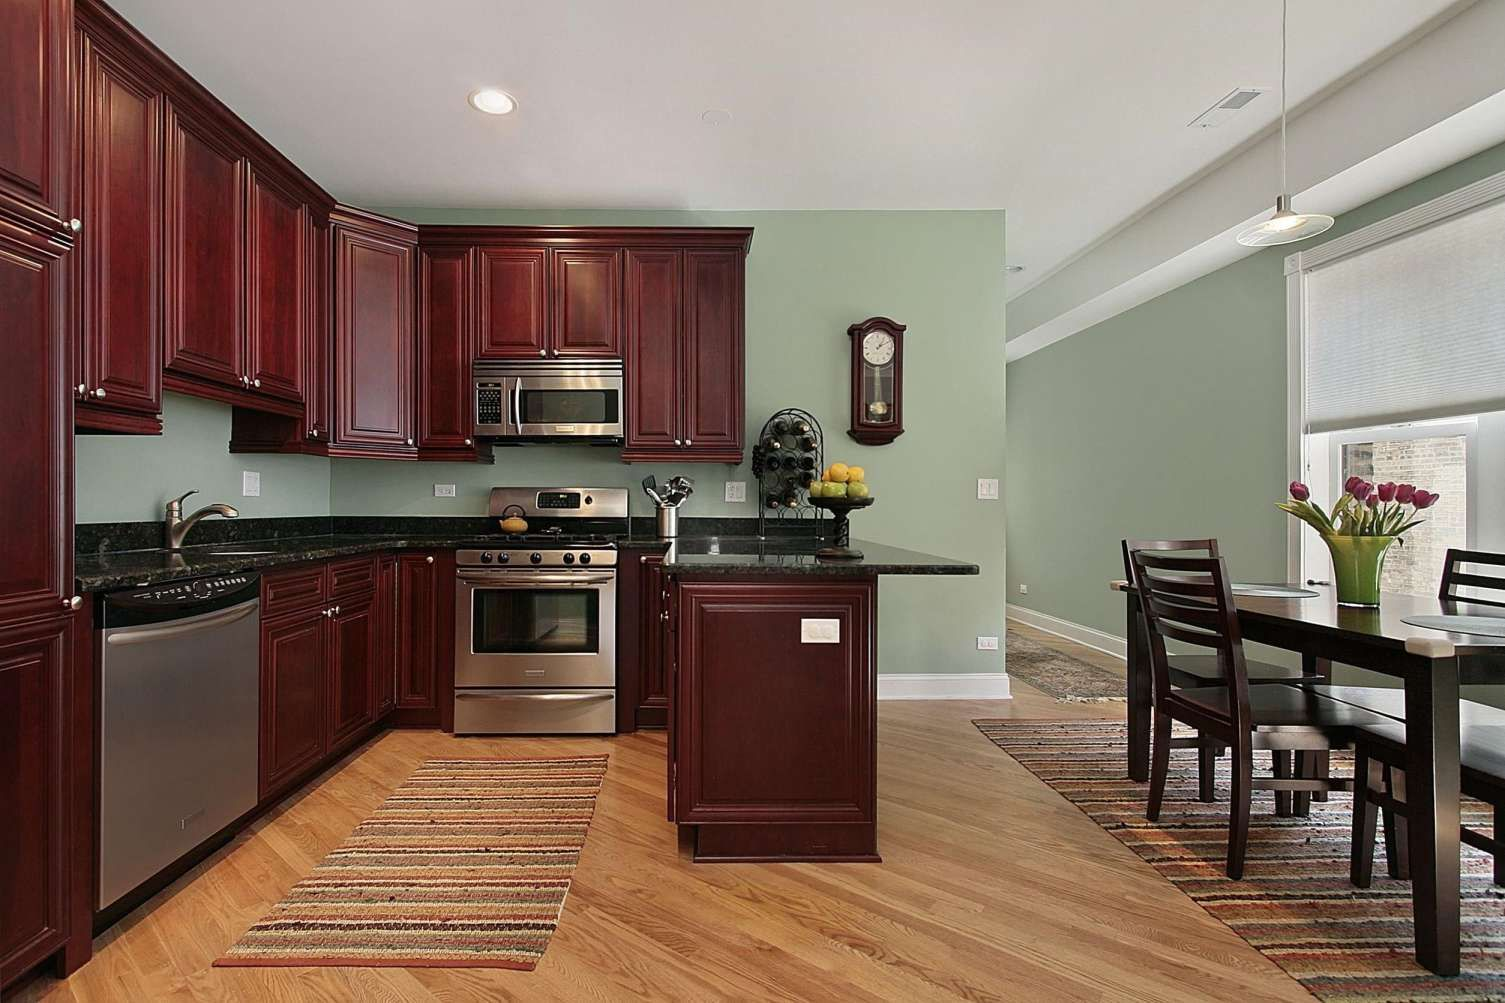 9 fantastic kitchen wall color ideas with dark cabinets collection wall color paint for on kitchen cabinet color ideas id=21475